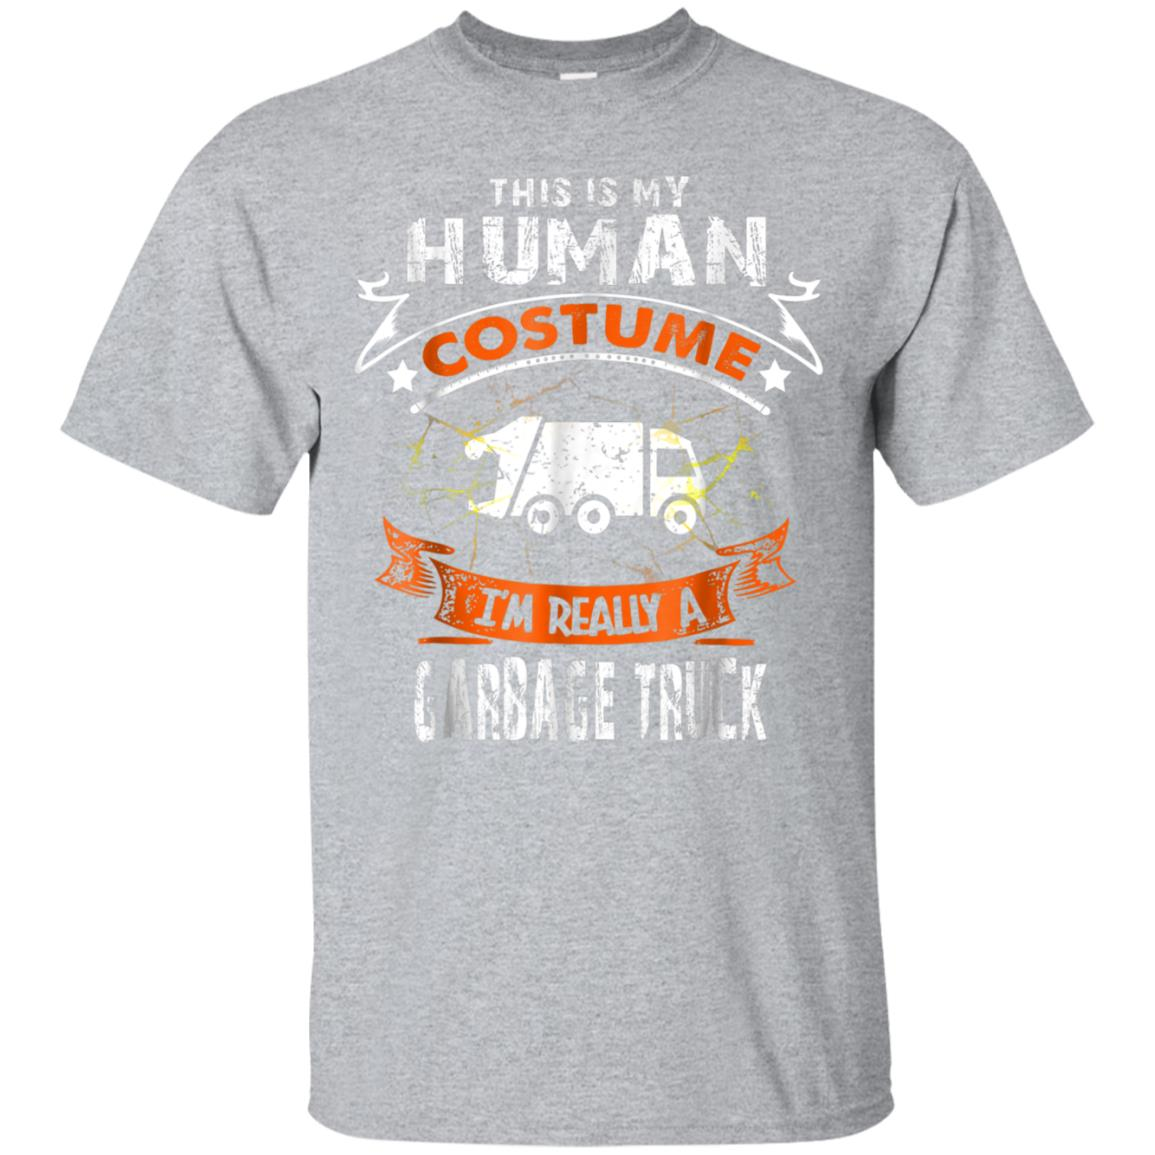 This Is My Human Costume Garbage Truck Scary Halloween Tee 99promocode